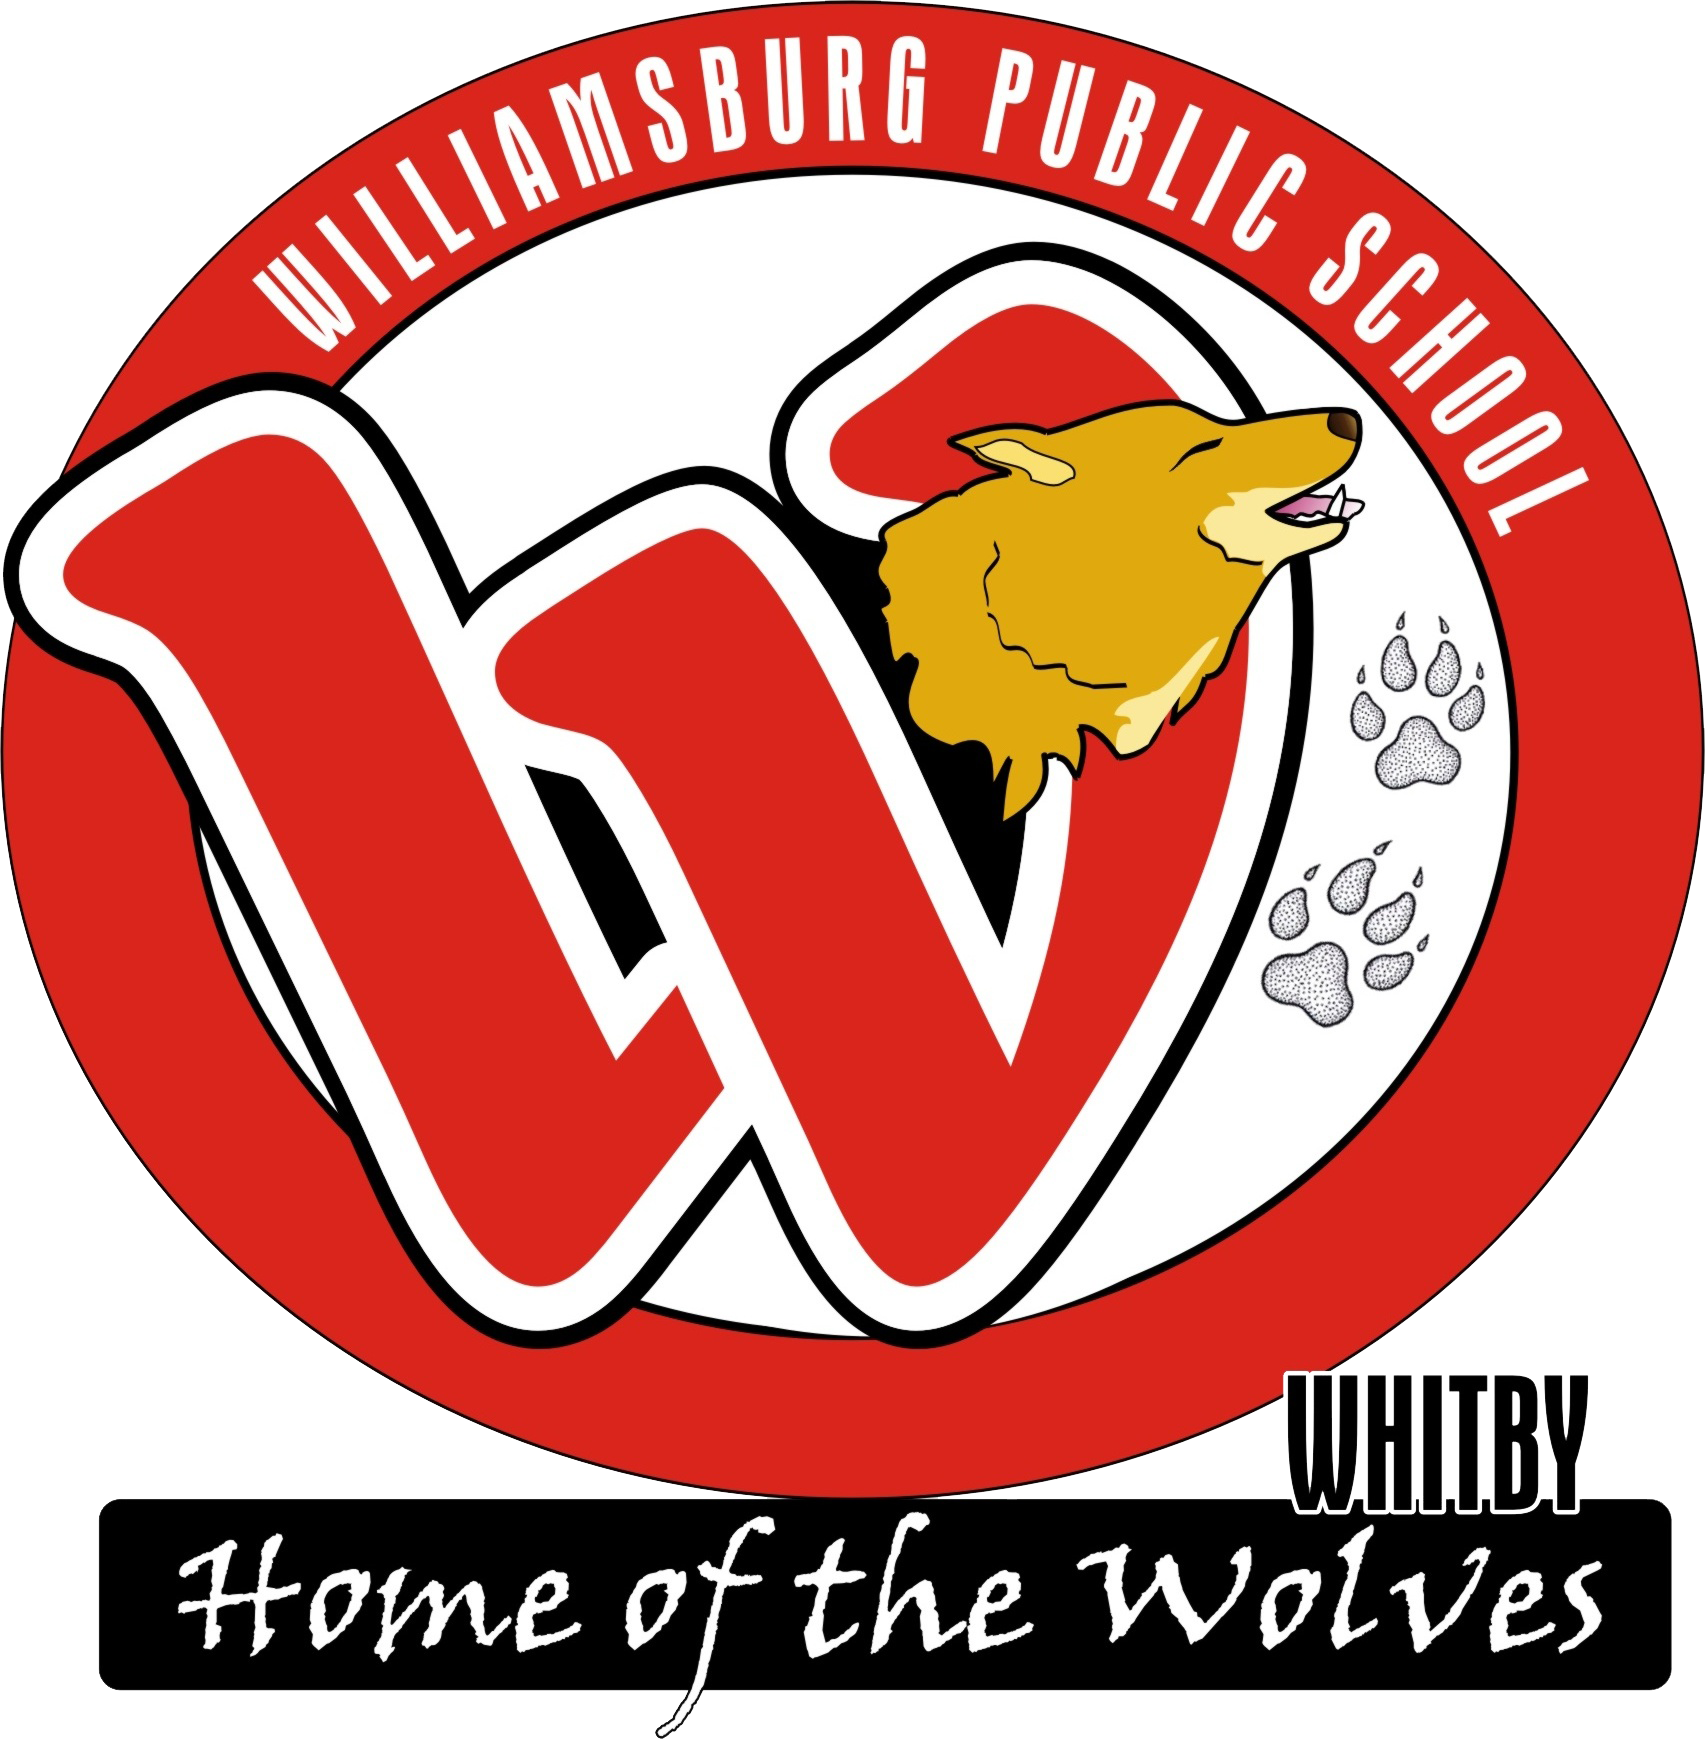 Williamsburg Public School logo